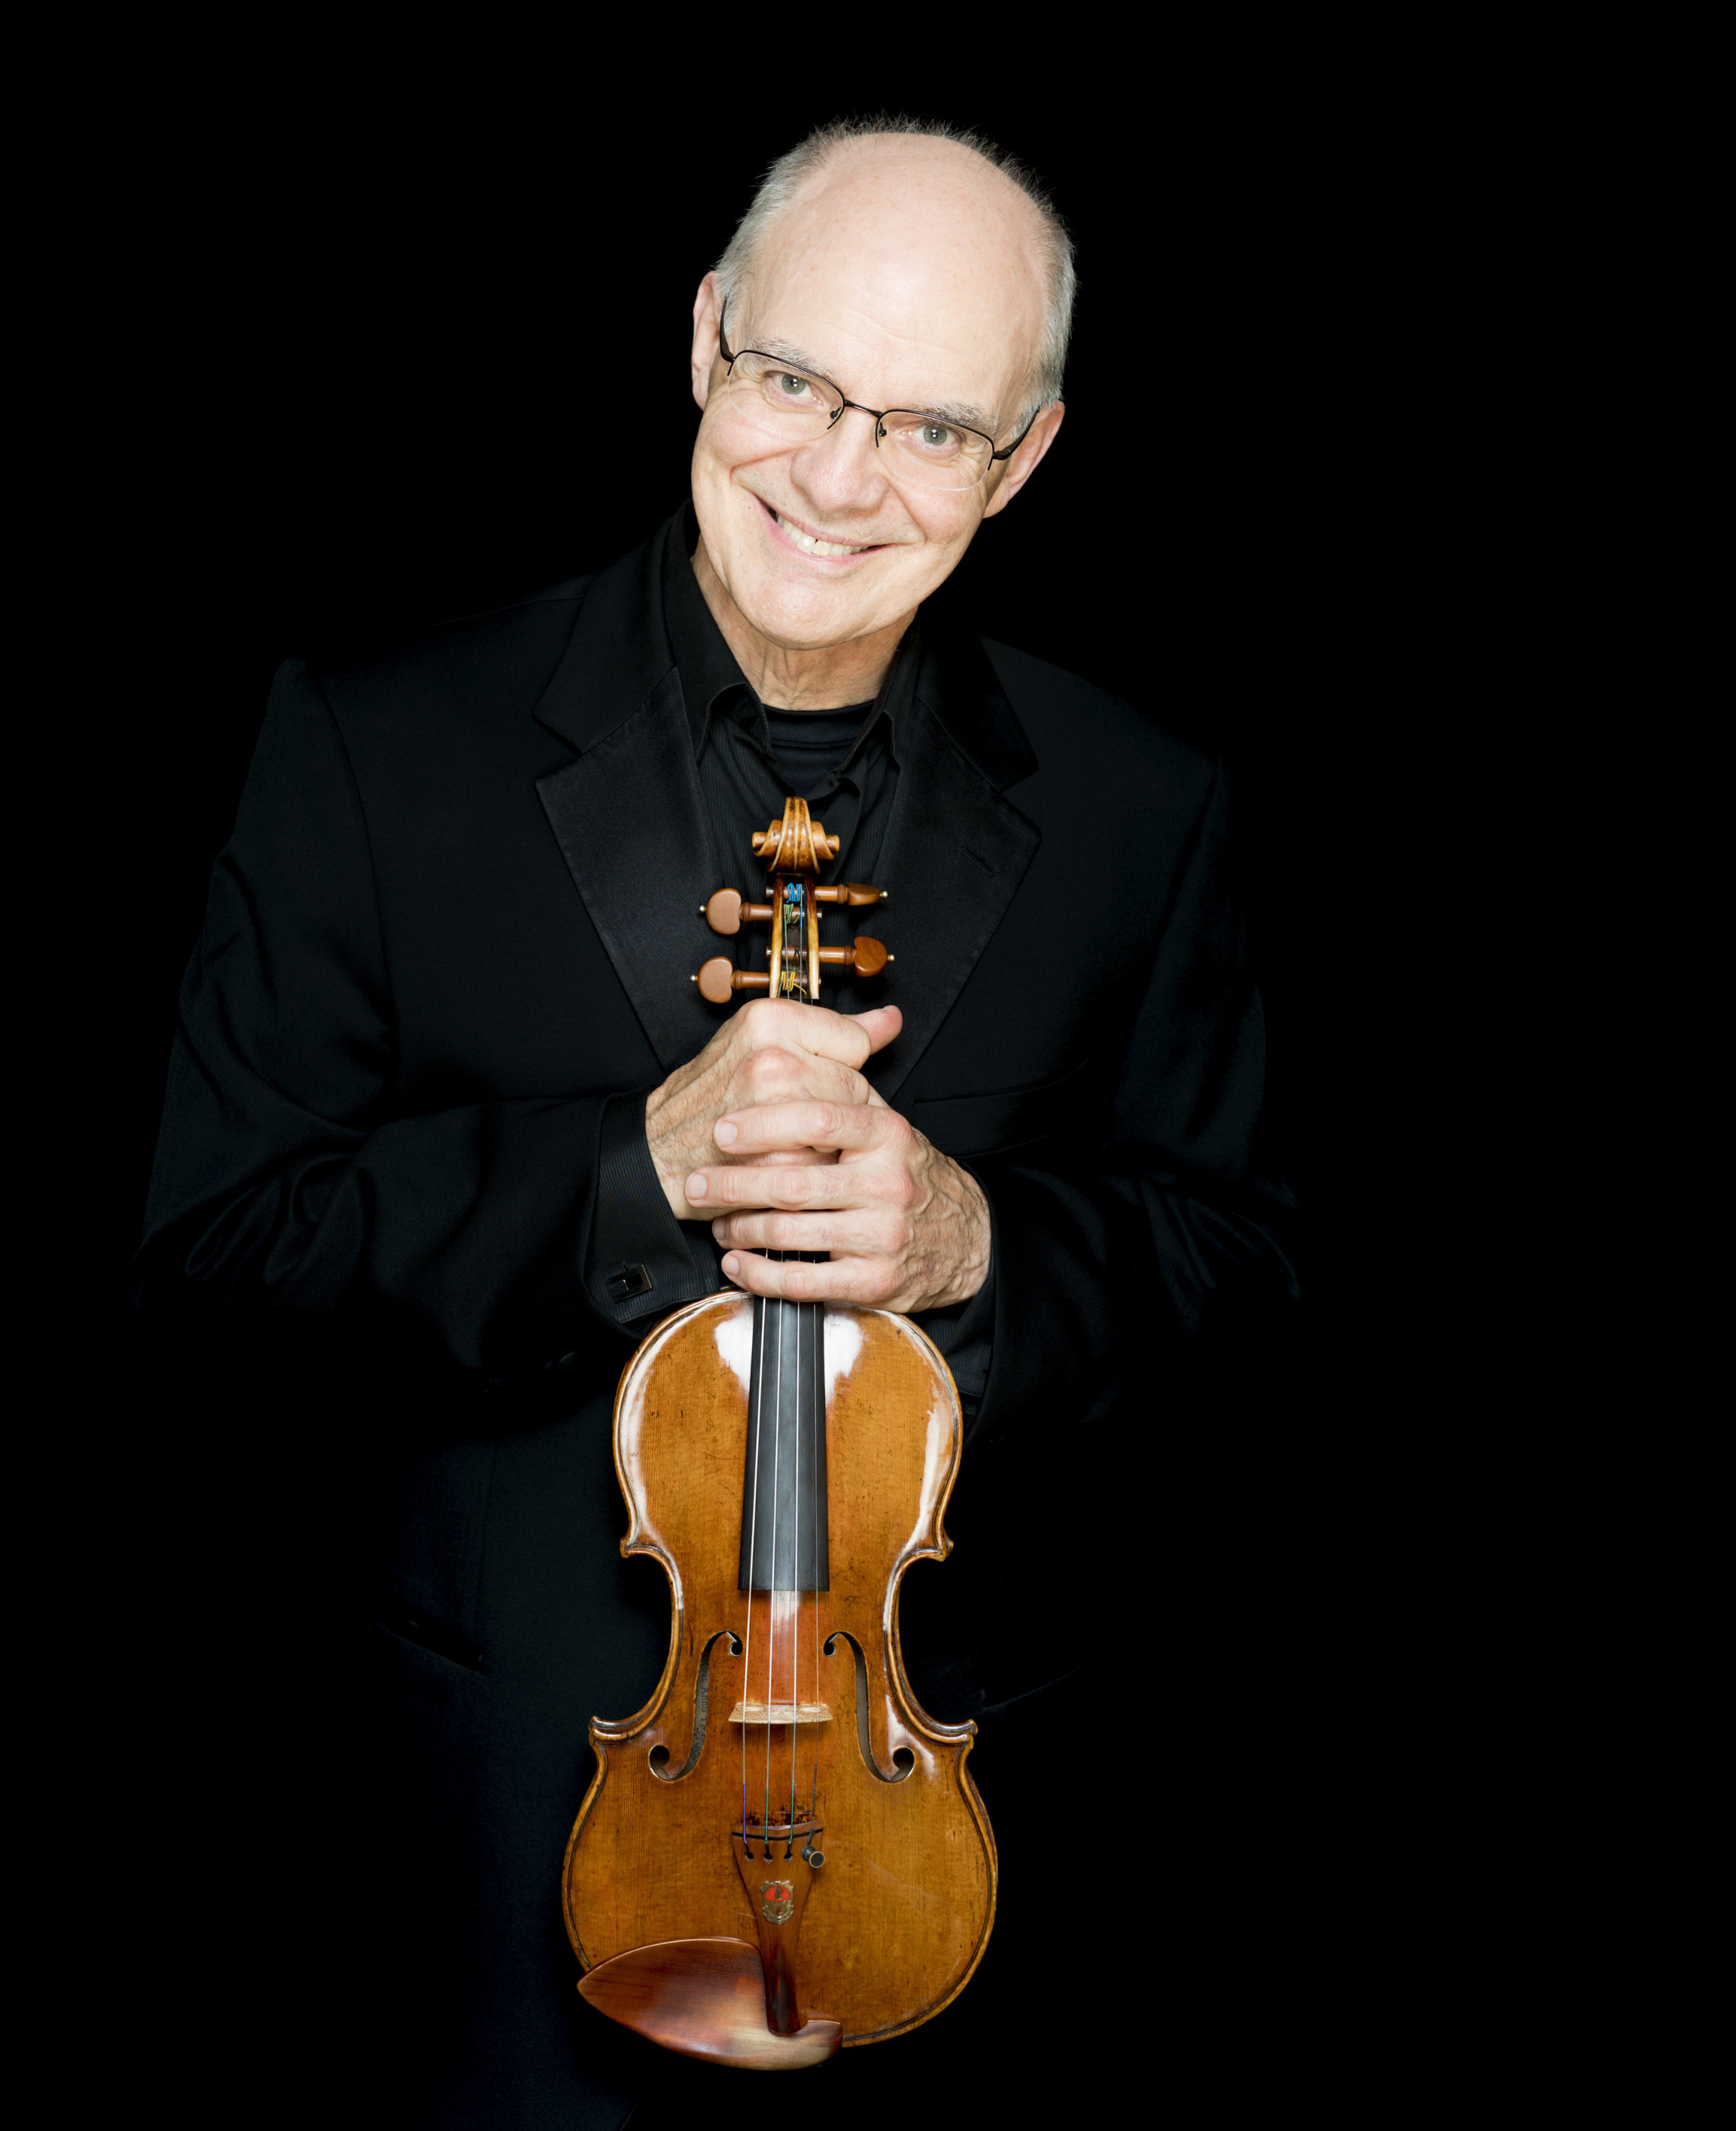 Malcolm Lowe served as the Regina Symphony Orchestra's concertmaster from 1975-1976. (Marco Borggreve)